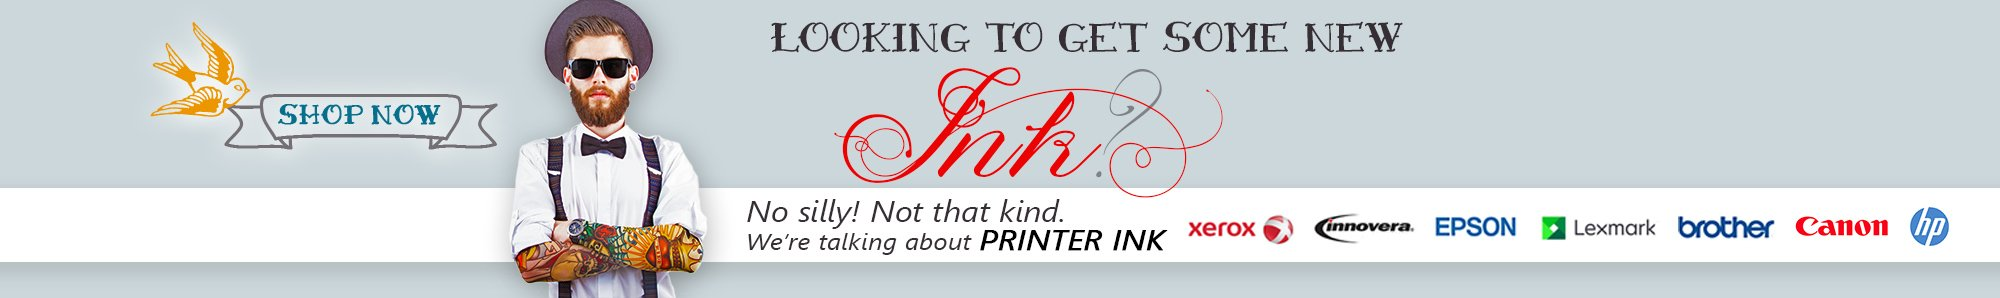 Looking to get some new ink? OfficeZilla's got tons of printer ink at www.OfficeZilla.com!